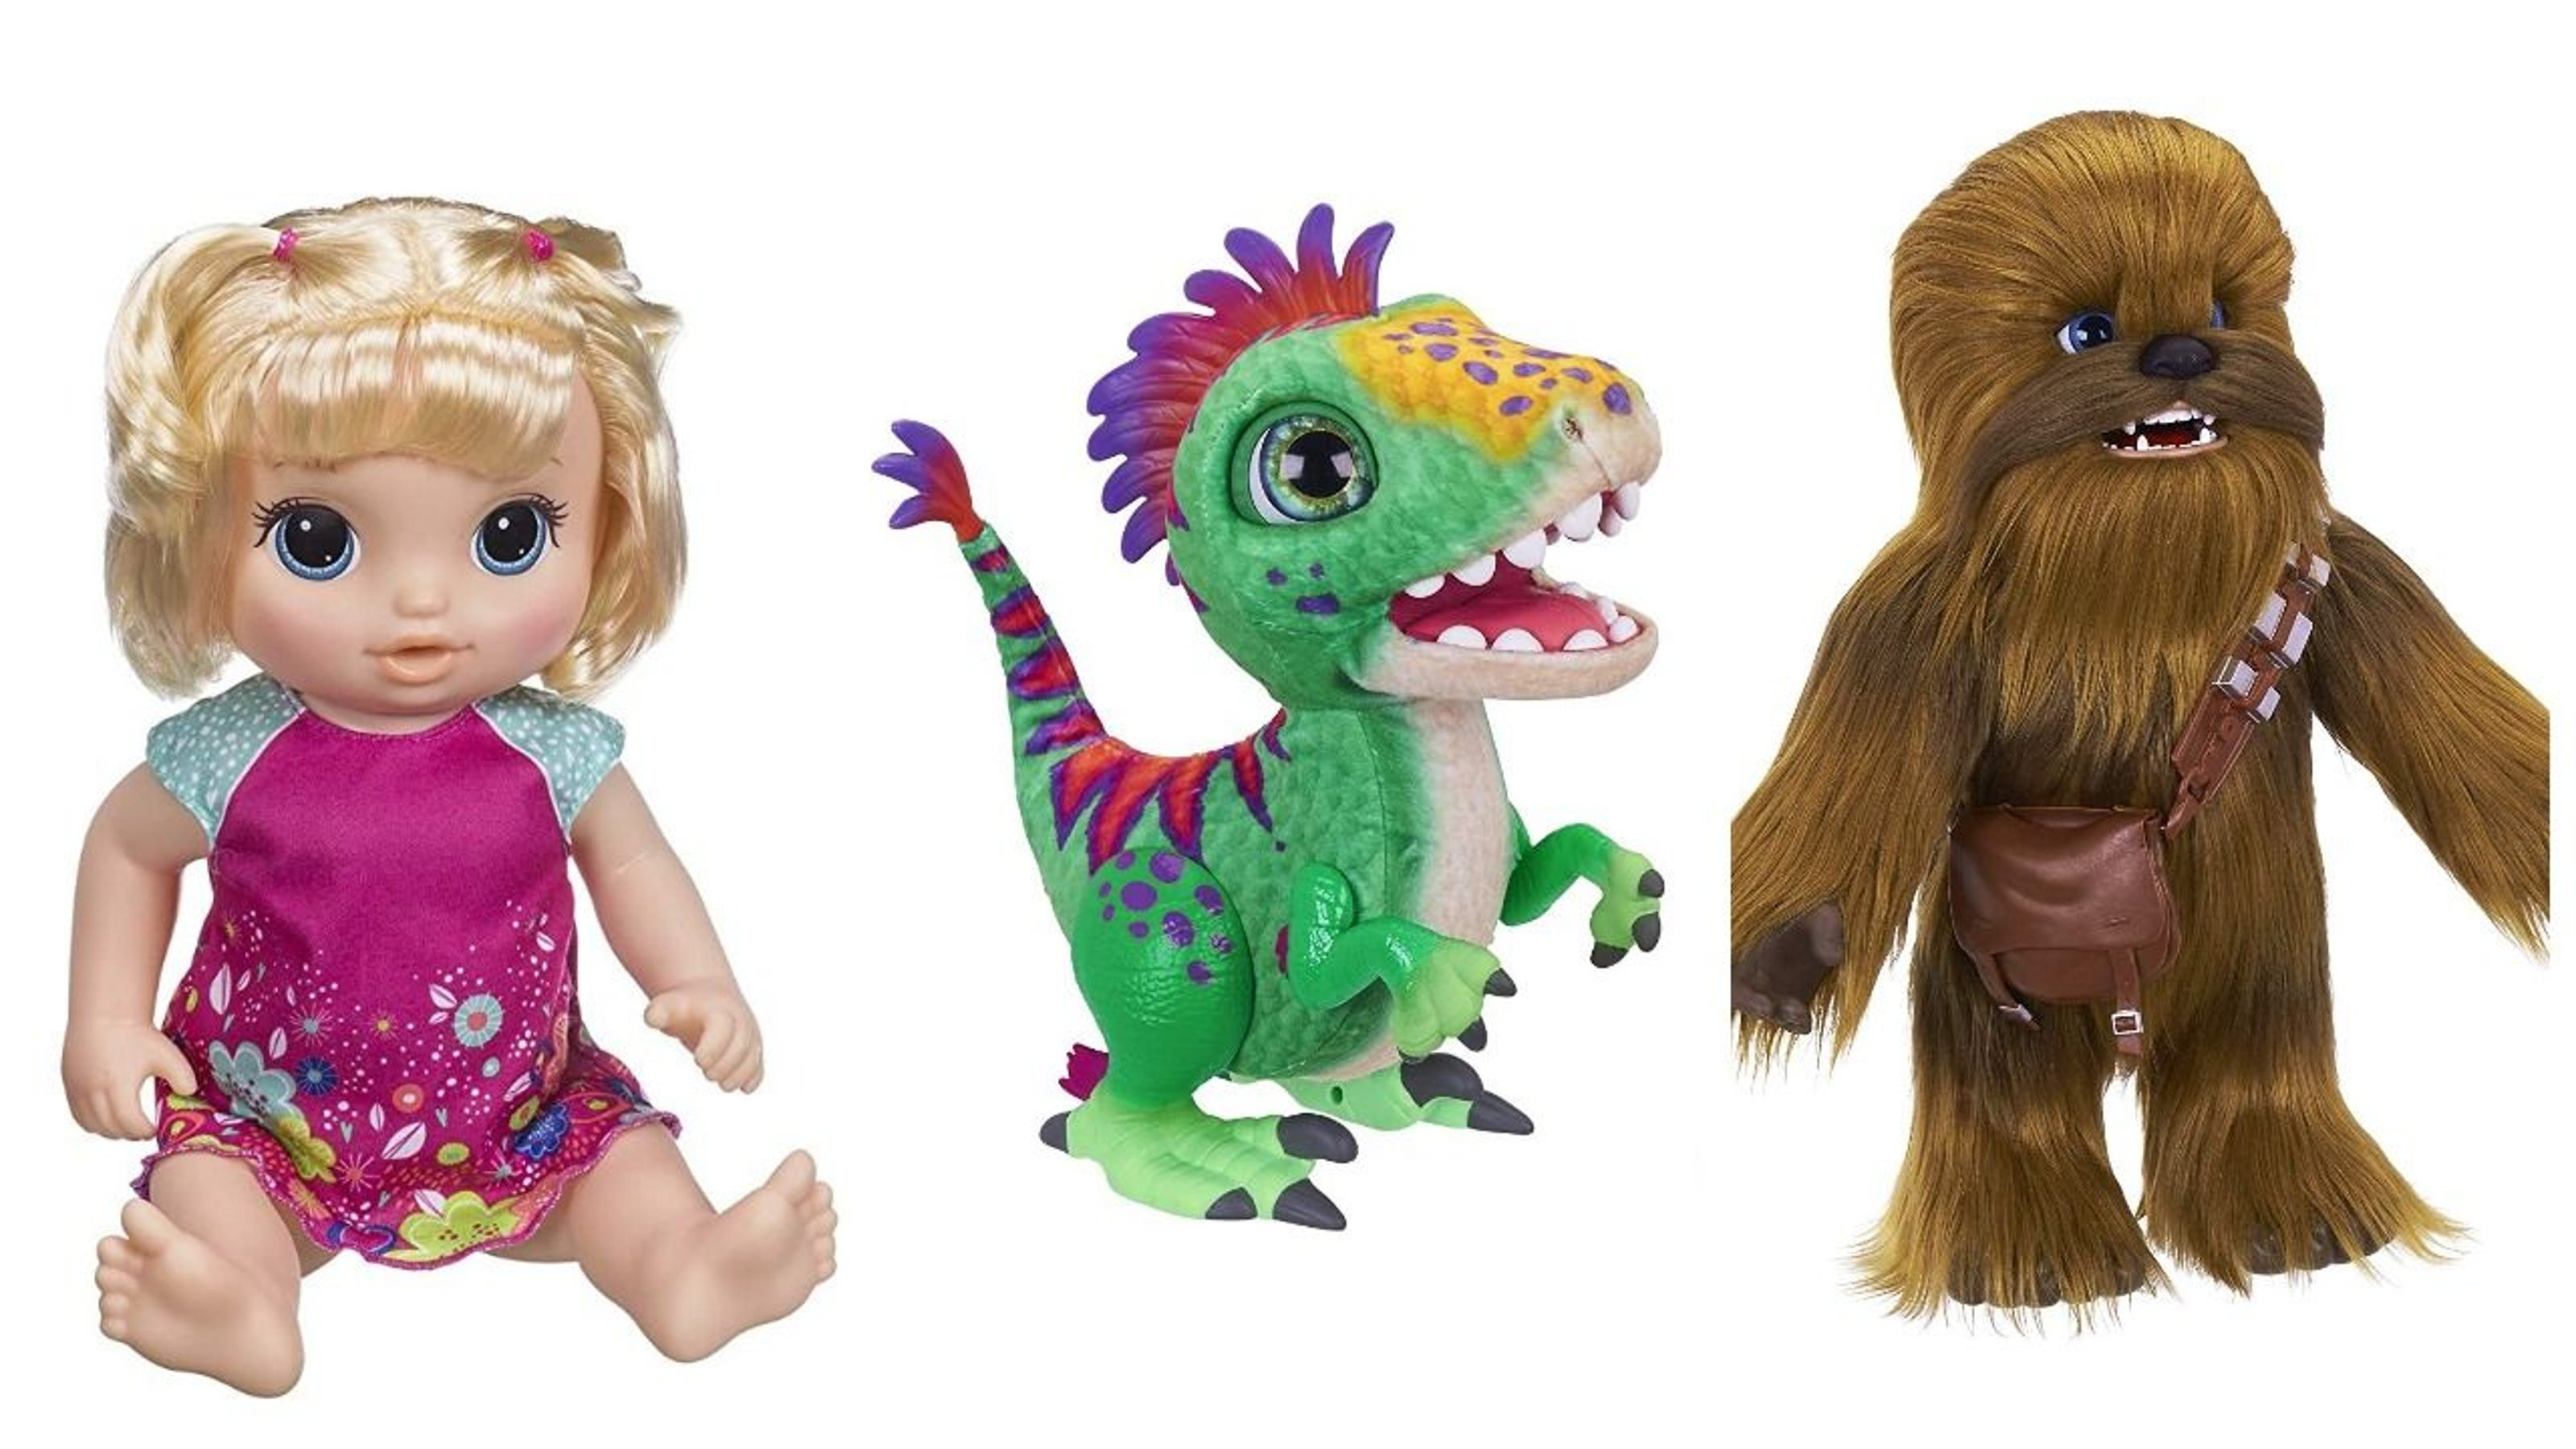 New Toys For Boys Ages 5 7 : Unicorn poop and prehistoric pets grace amazon s top toy